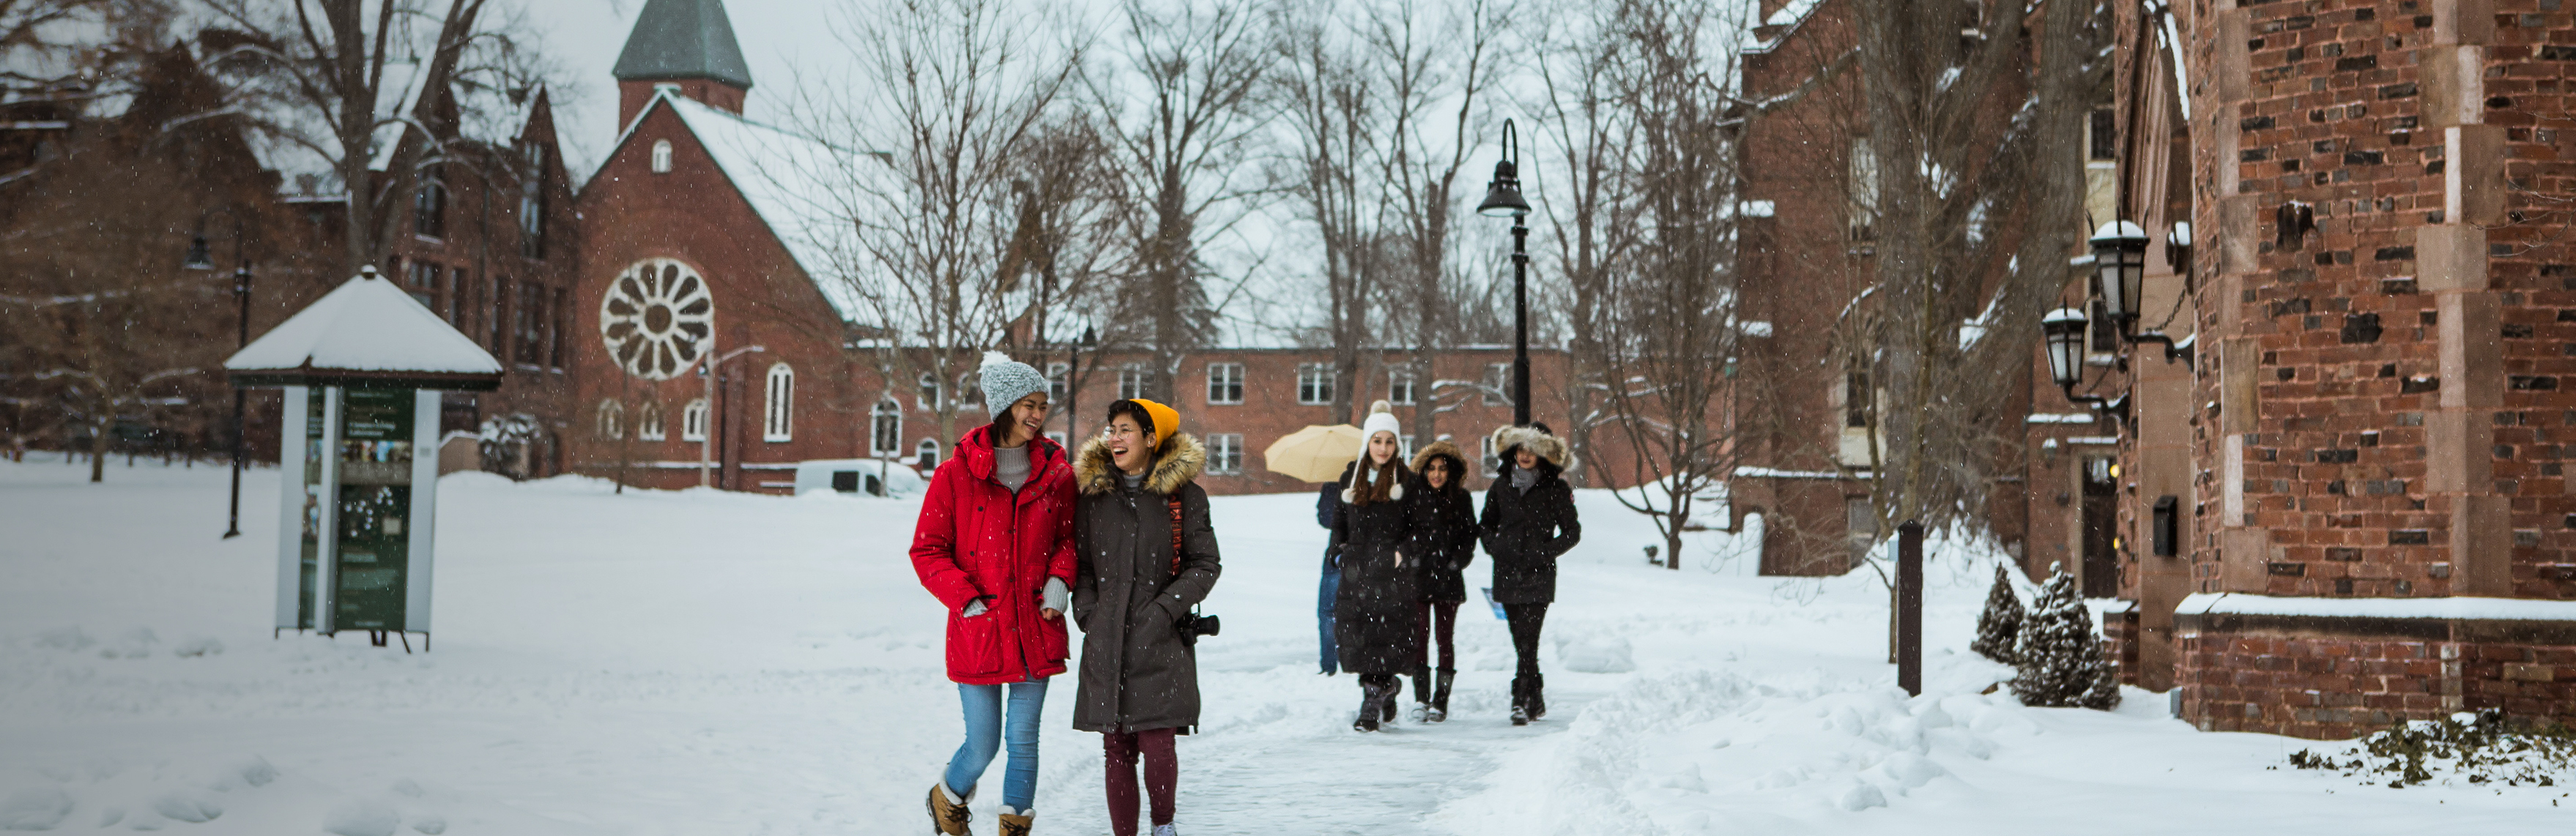 Mount Holyoke students in winter